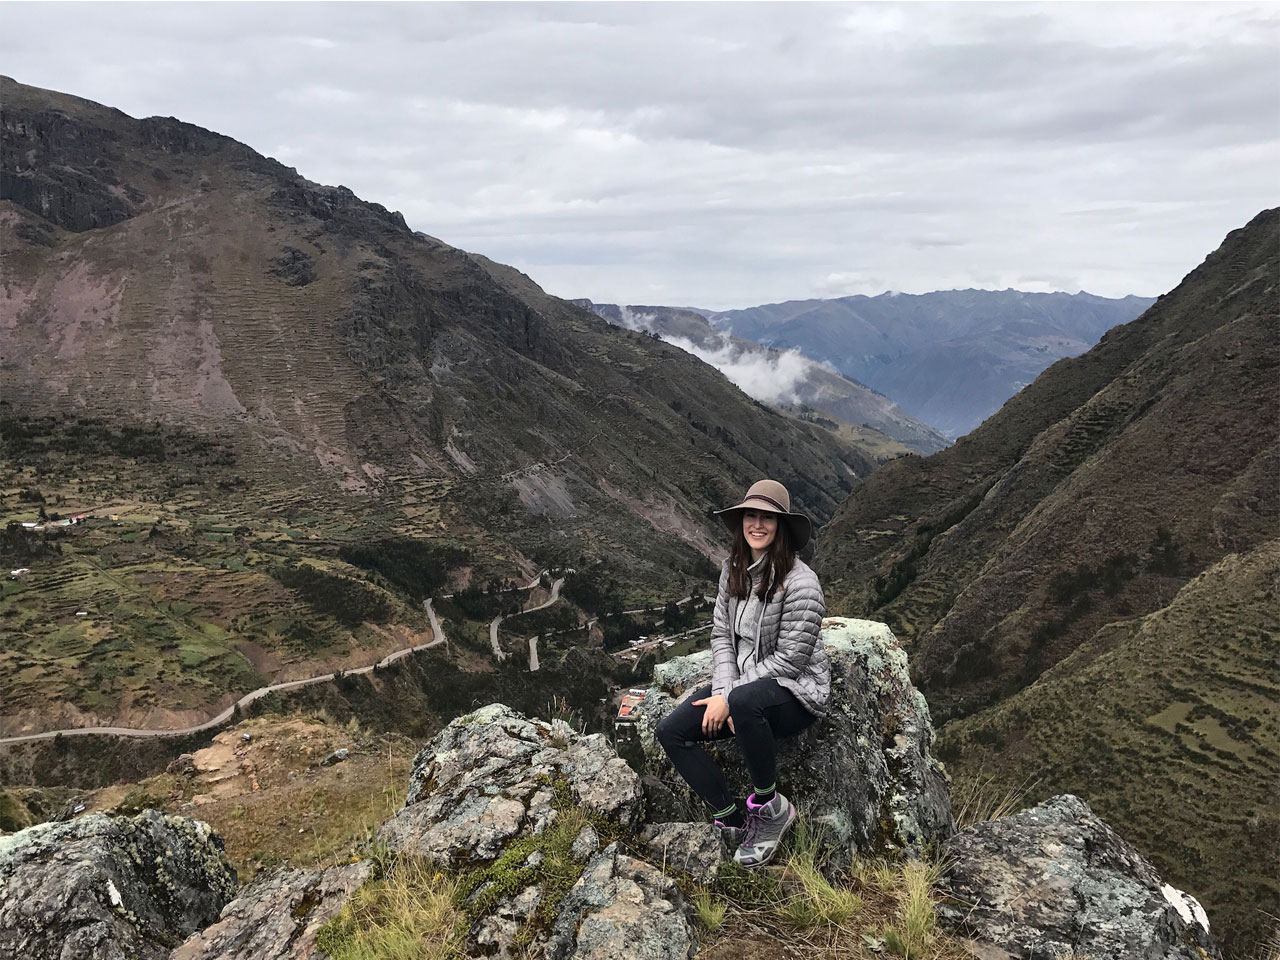 Men's Fitness digital editor Brittany Smith hikes in Peru.